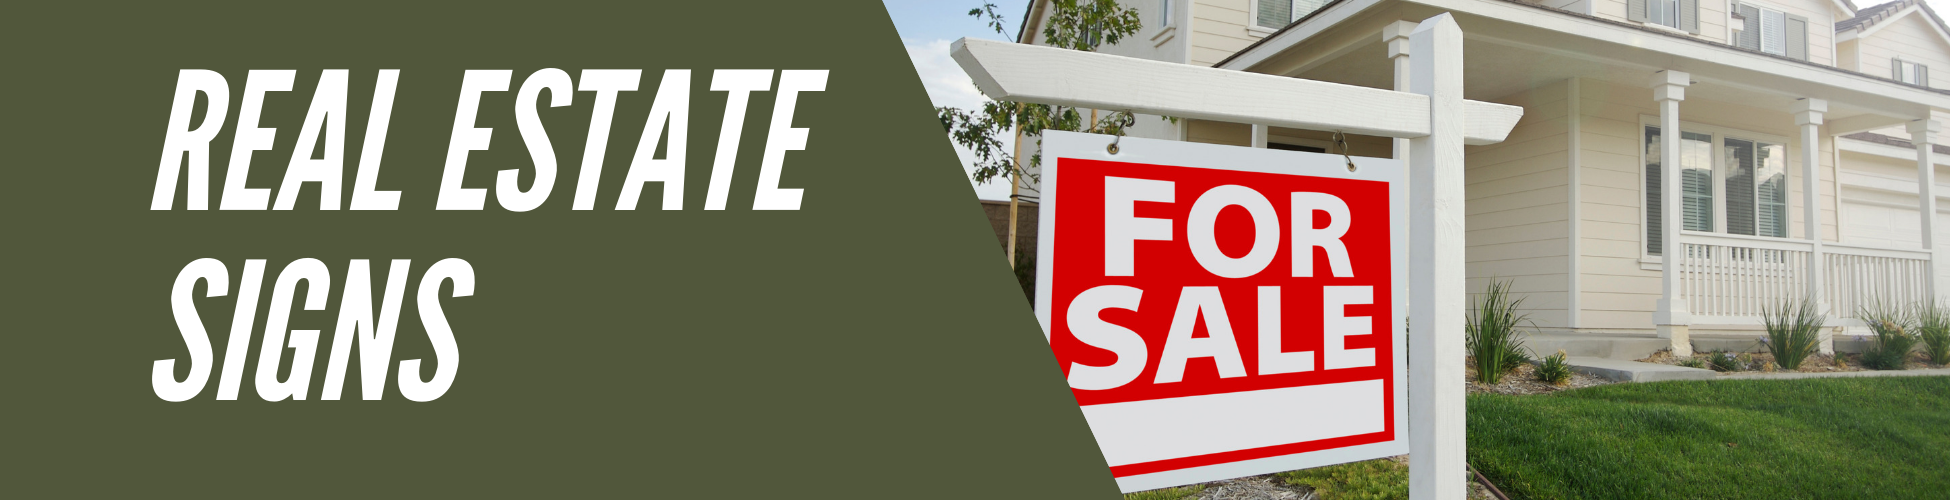 real-estate-signs-1-.png